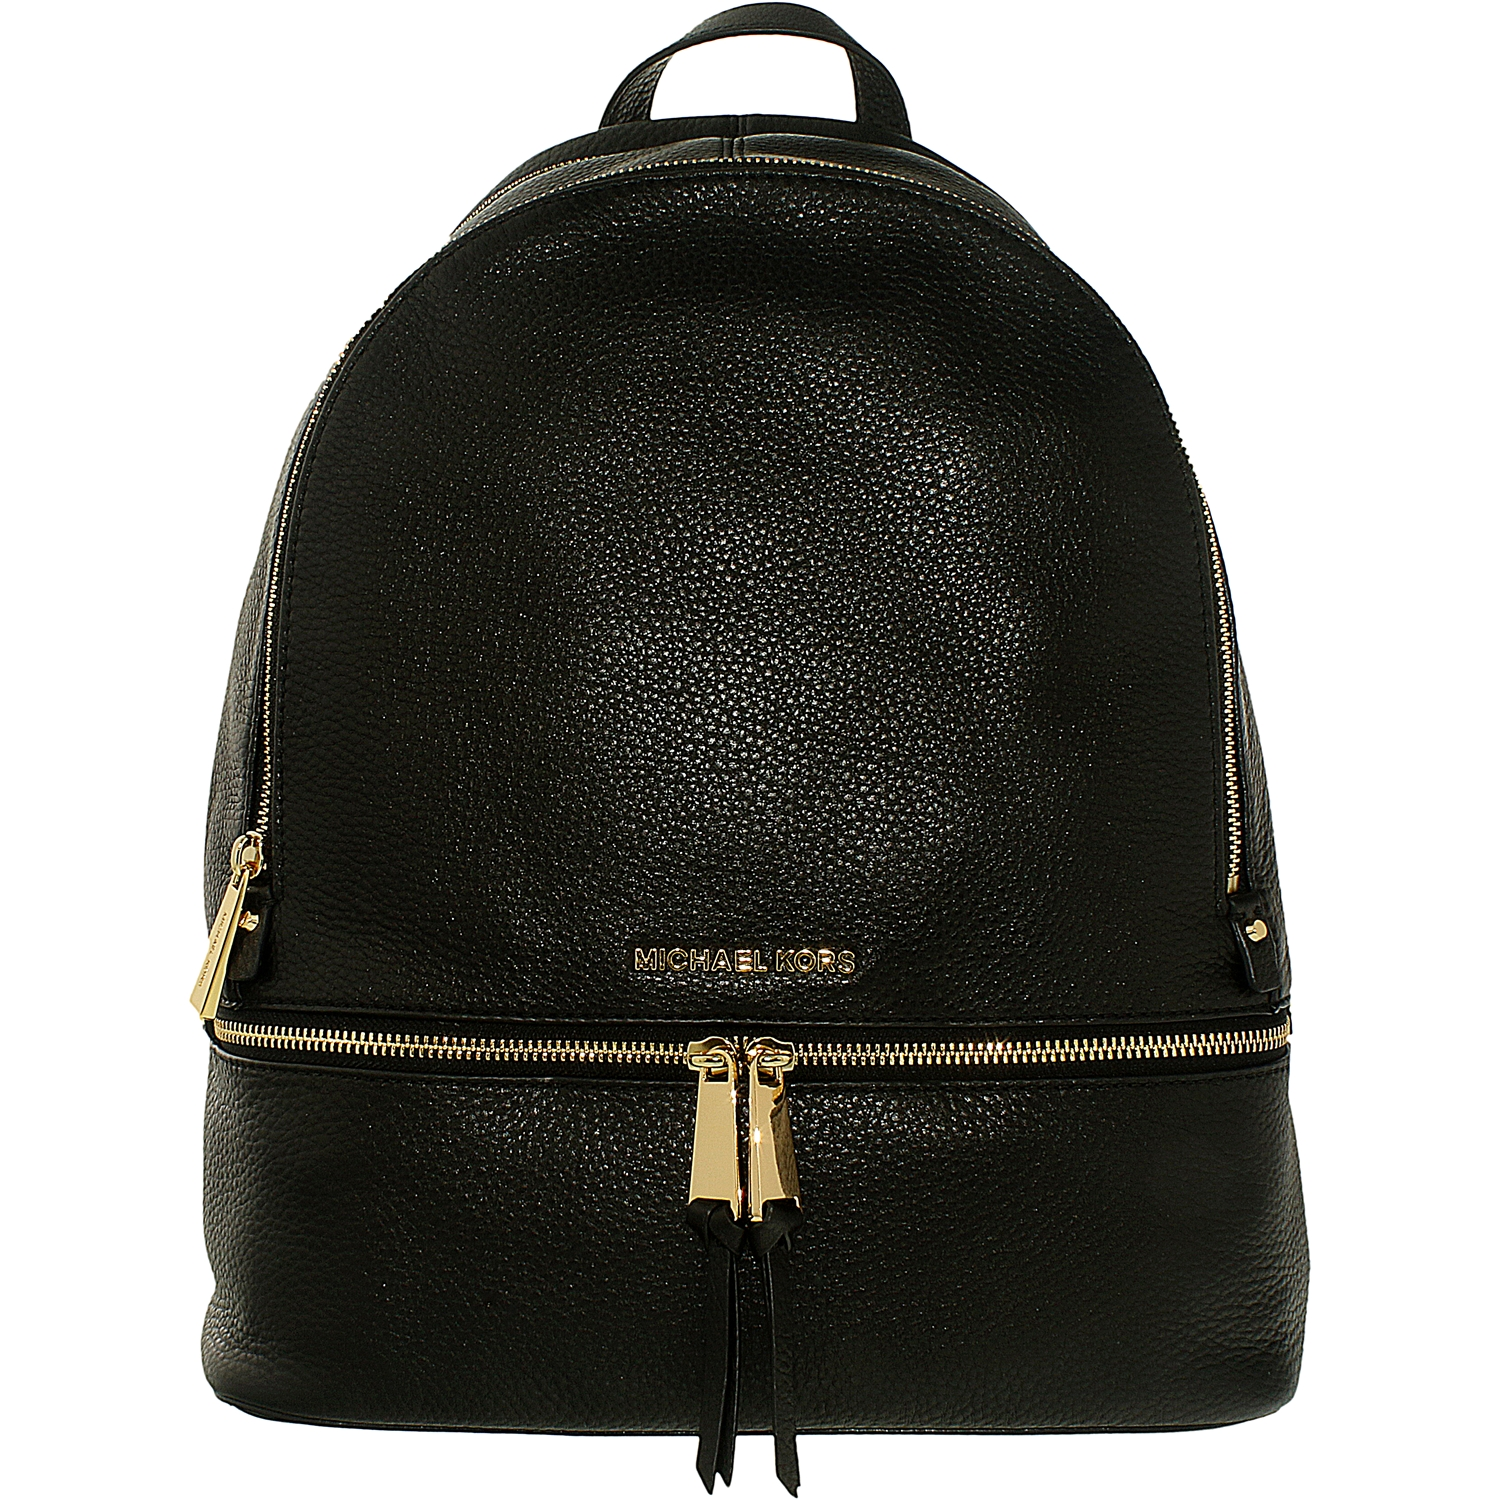 Michael Kors Women's Leather Backpack